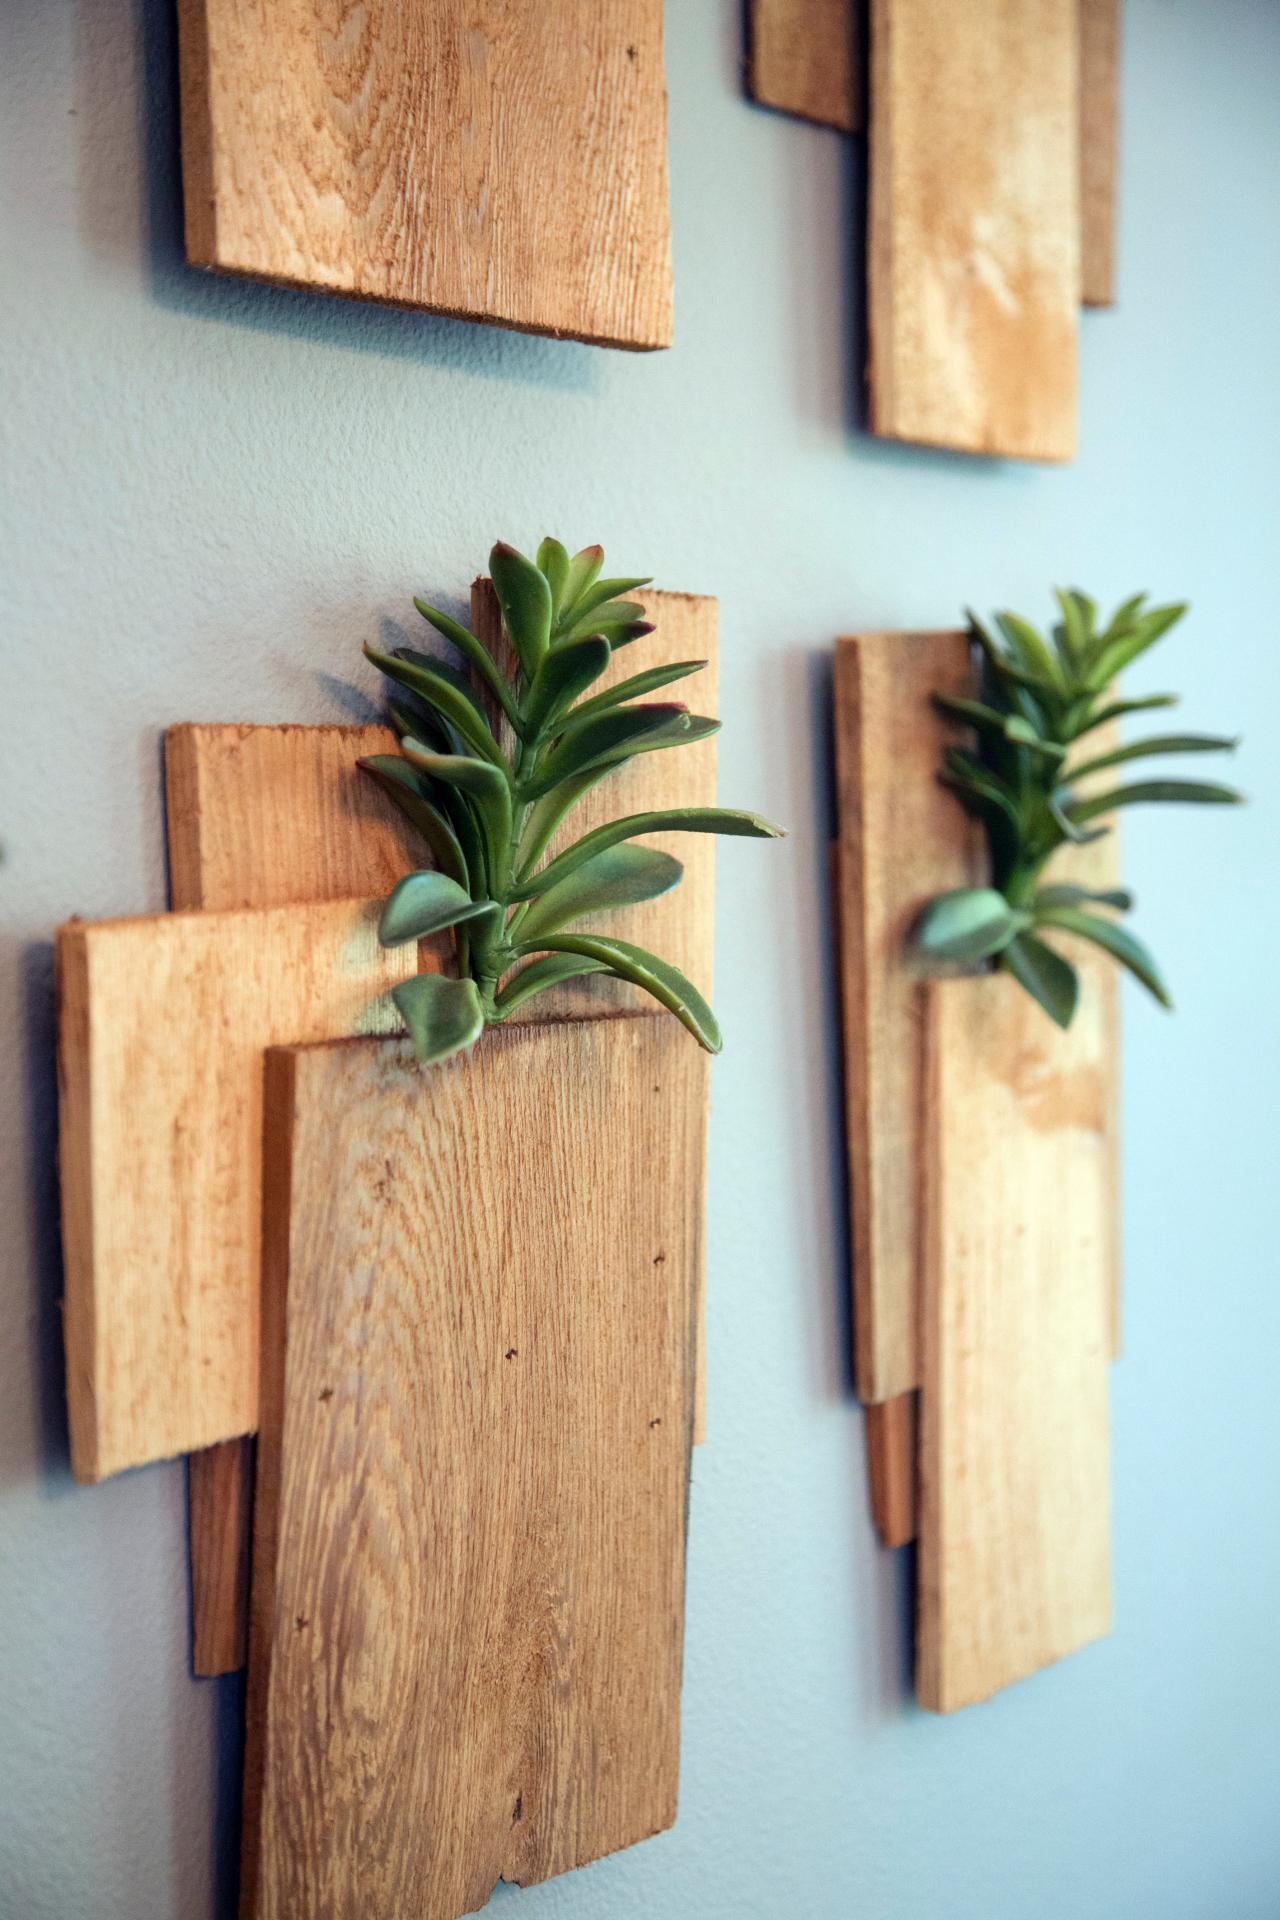 18 Genius Wall Decor Ideas Hgtvs Decorating Design Blog Hgtv